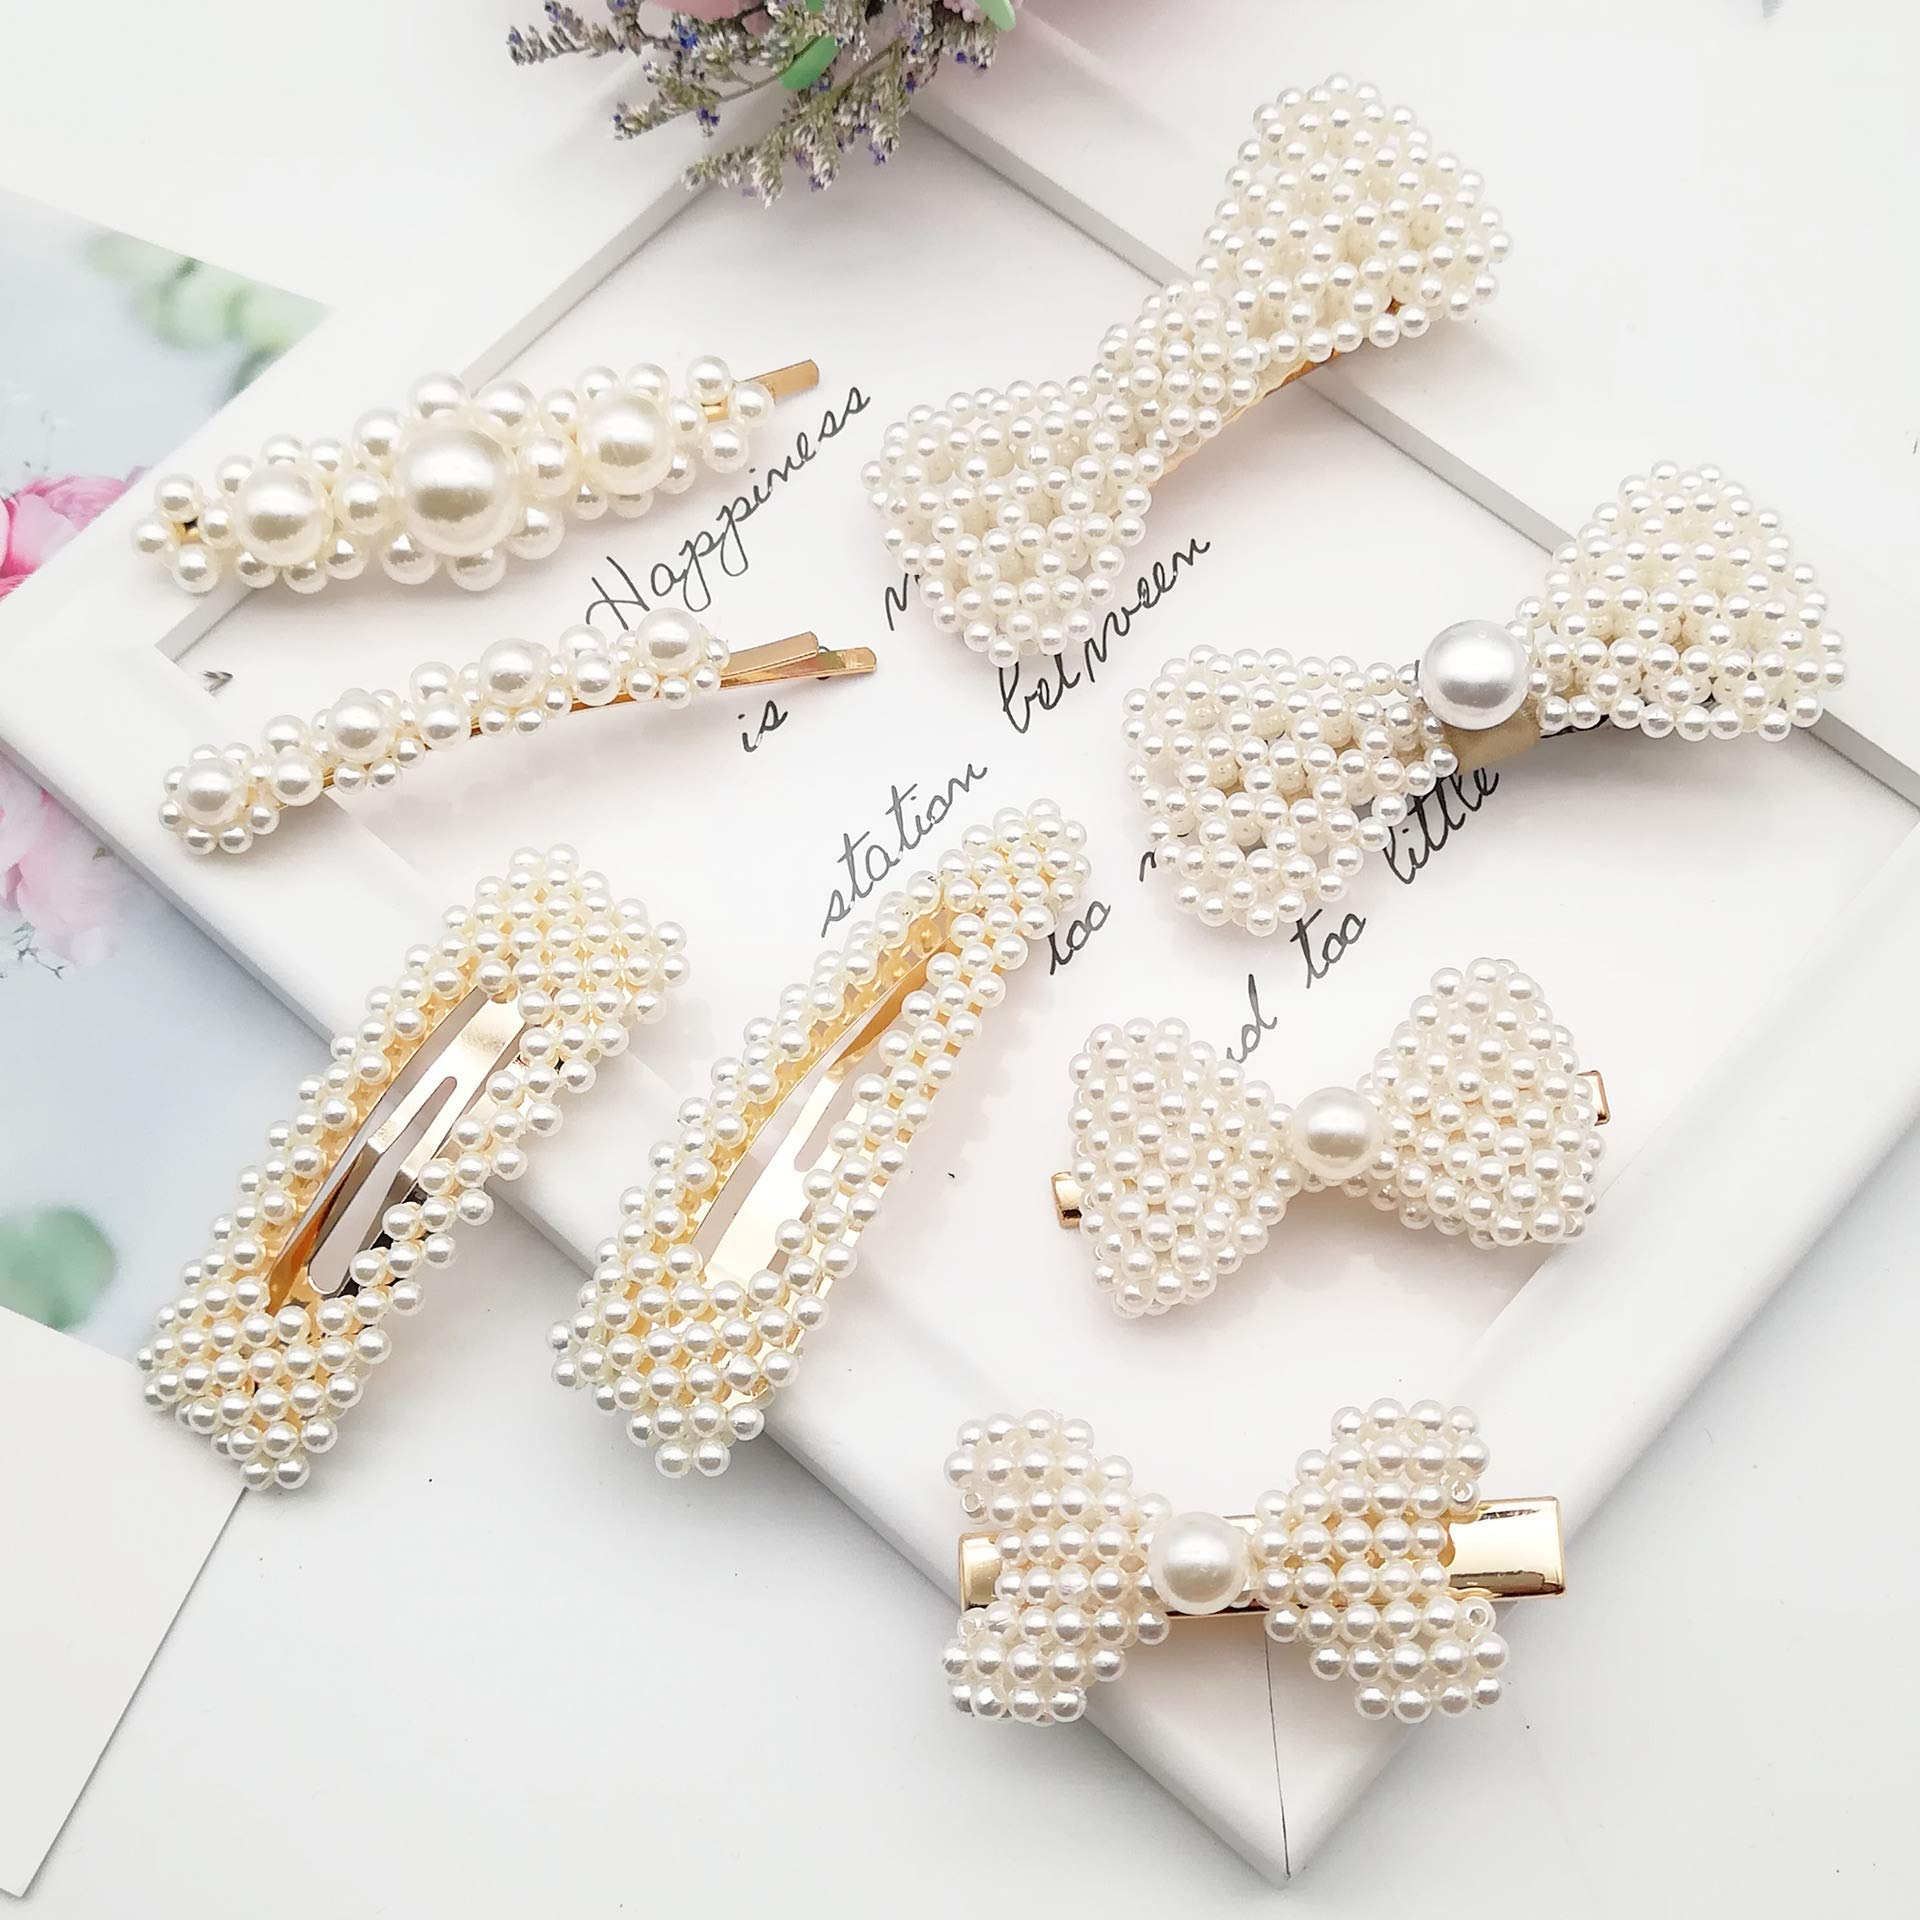 IRUMENG 8Pcs Sweet Artificial Pearl Hair Clips Barrettes Wedding Decorative Bridal Bobby Butterfly Bow Hair Pins for Women Girls Ladies by IRUMENG